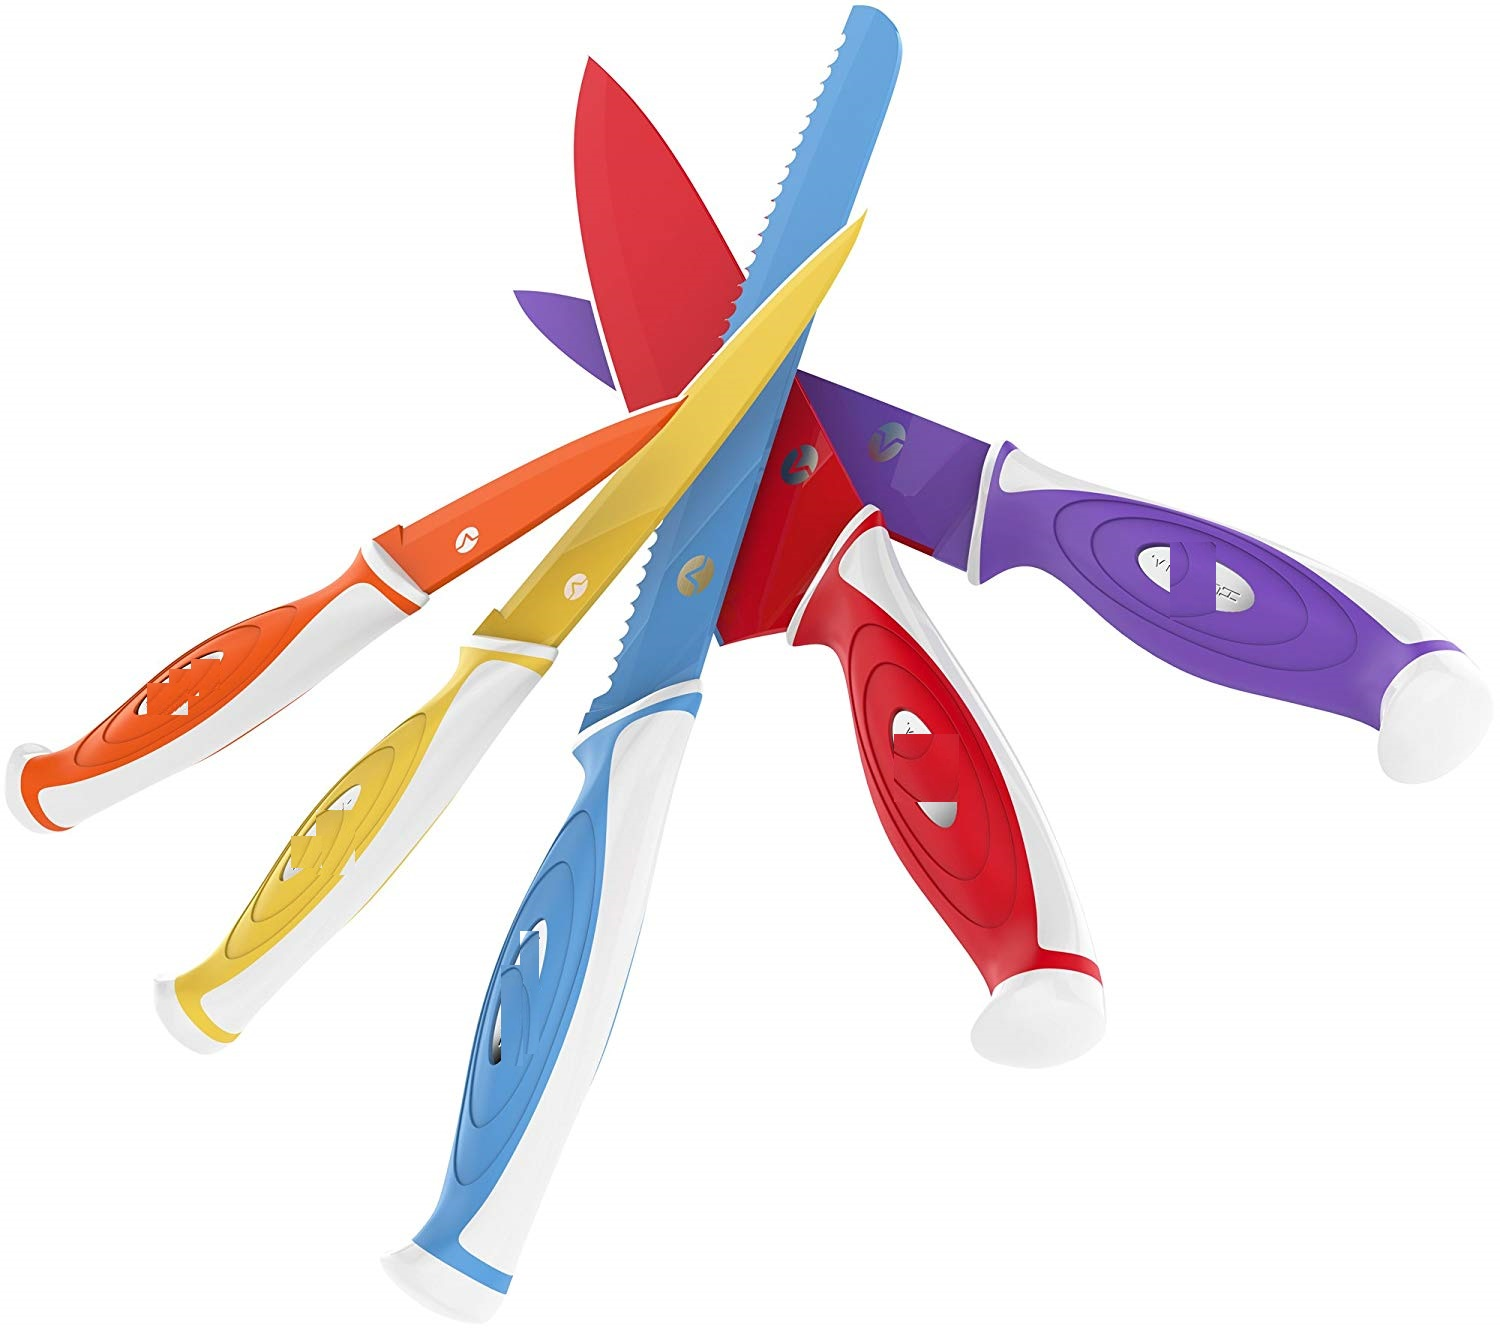 10 Piece Colorful Knife Set - 5 Kitchen Knives with 5 Knife Sheath Covers